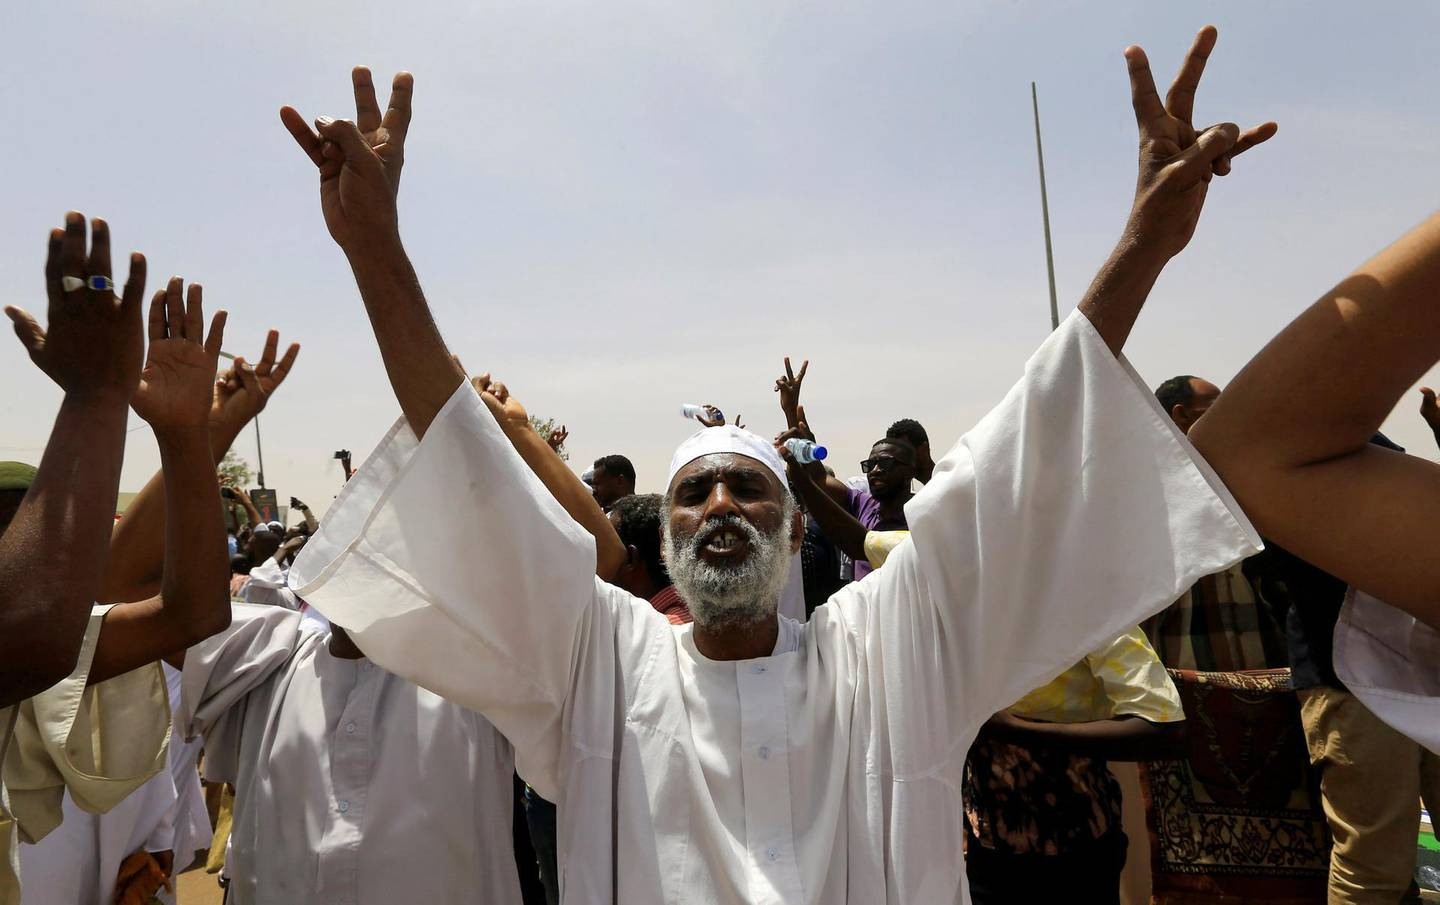 A Sudanese demonstrator chants slogans as he protests against the army's announcement that President Omar al-Bashir would be replaced by a military-led transitional council, near Defence Ministry in Khartoum, Sudan April 12, 2019. REUTERS/Stringer